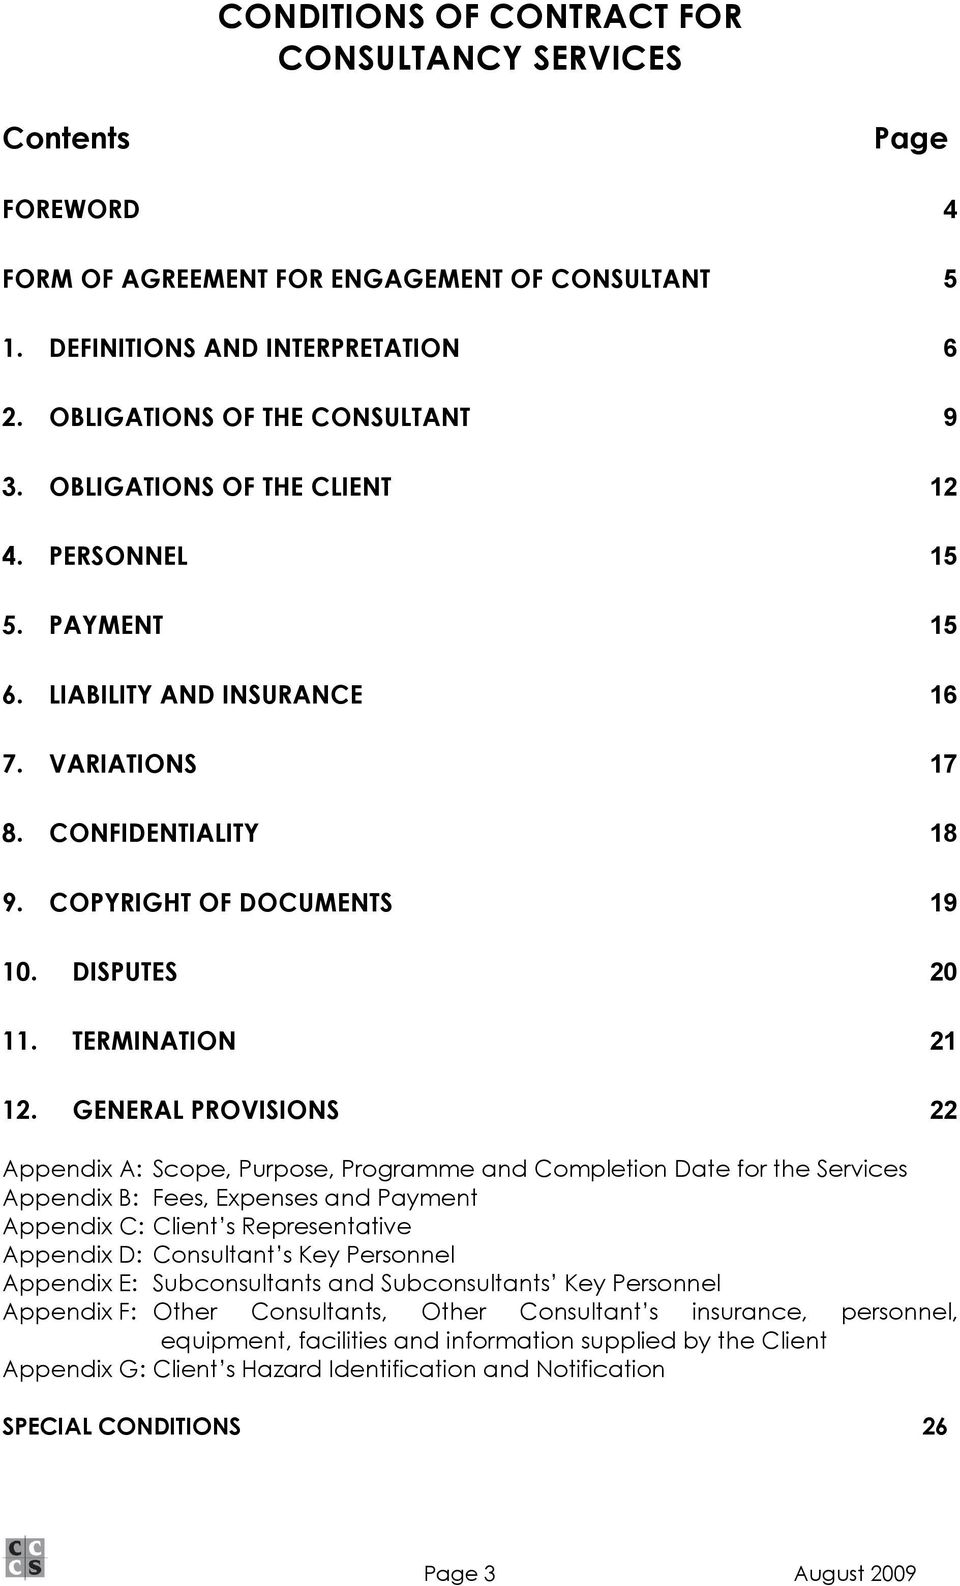 GENERAL PROVISIONS 22 Appendix A: Scope, Purpose, Programme and Completion Date for the Services Appendix B: Fees, Expenses and Payment Appendix C: Client s Representative Appendix D: Consultant s